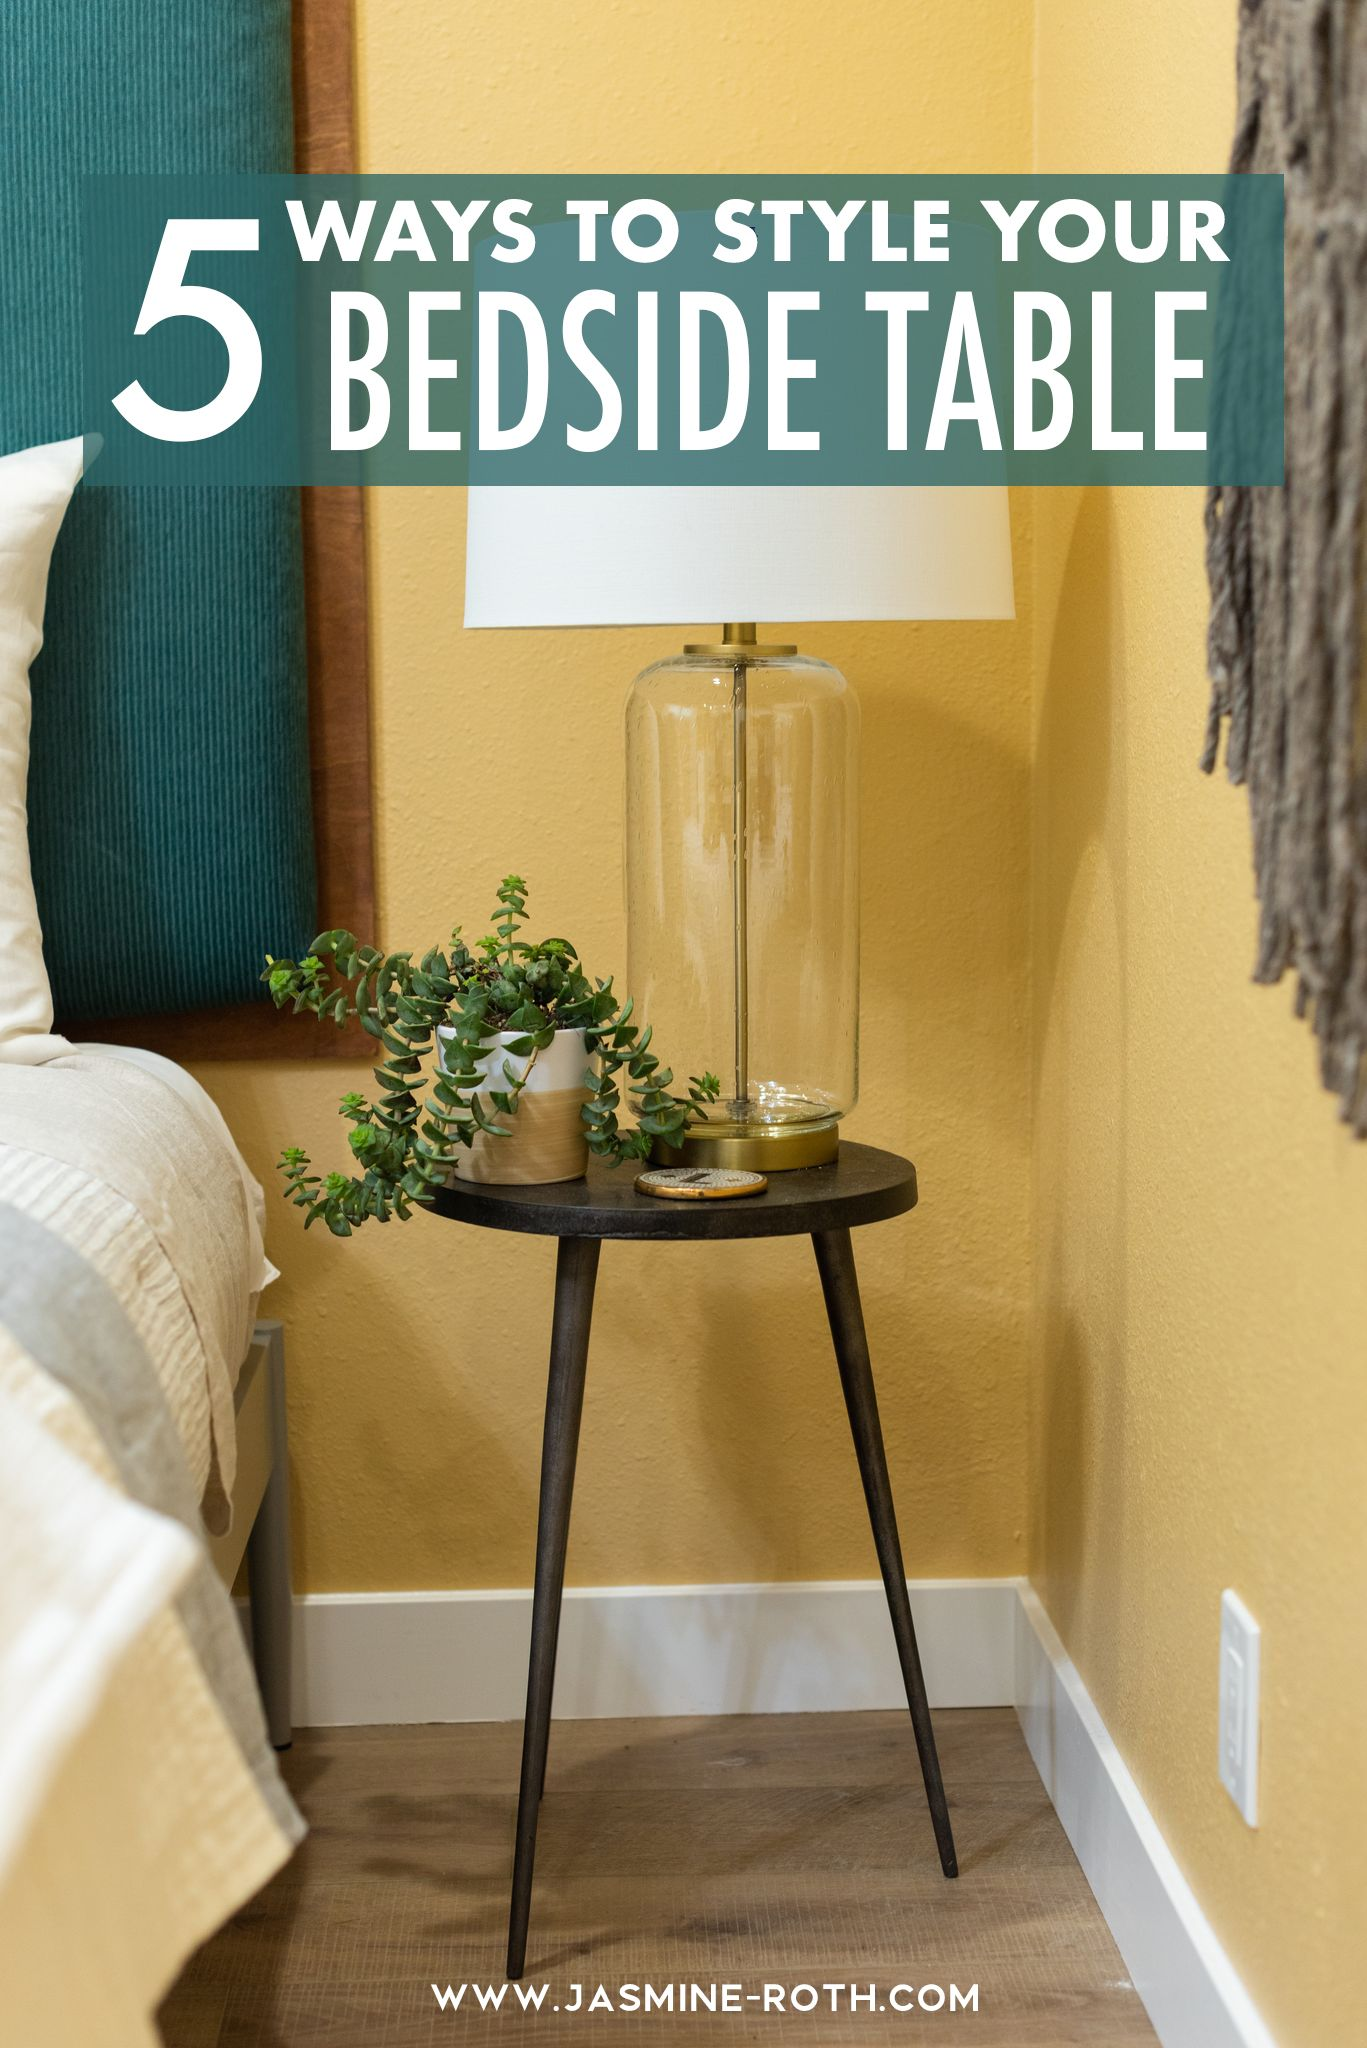 5 Ways To Style A Bedside Table The Blog By Jasmine Roth In 2020 Modern Bedside Table Bedside Table Guest Room Decor